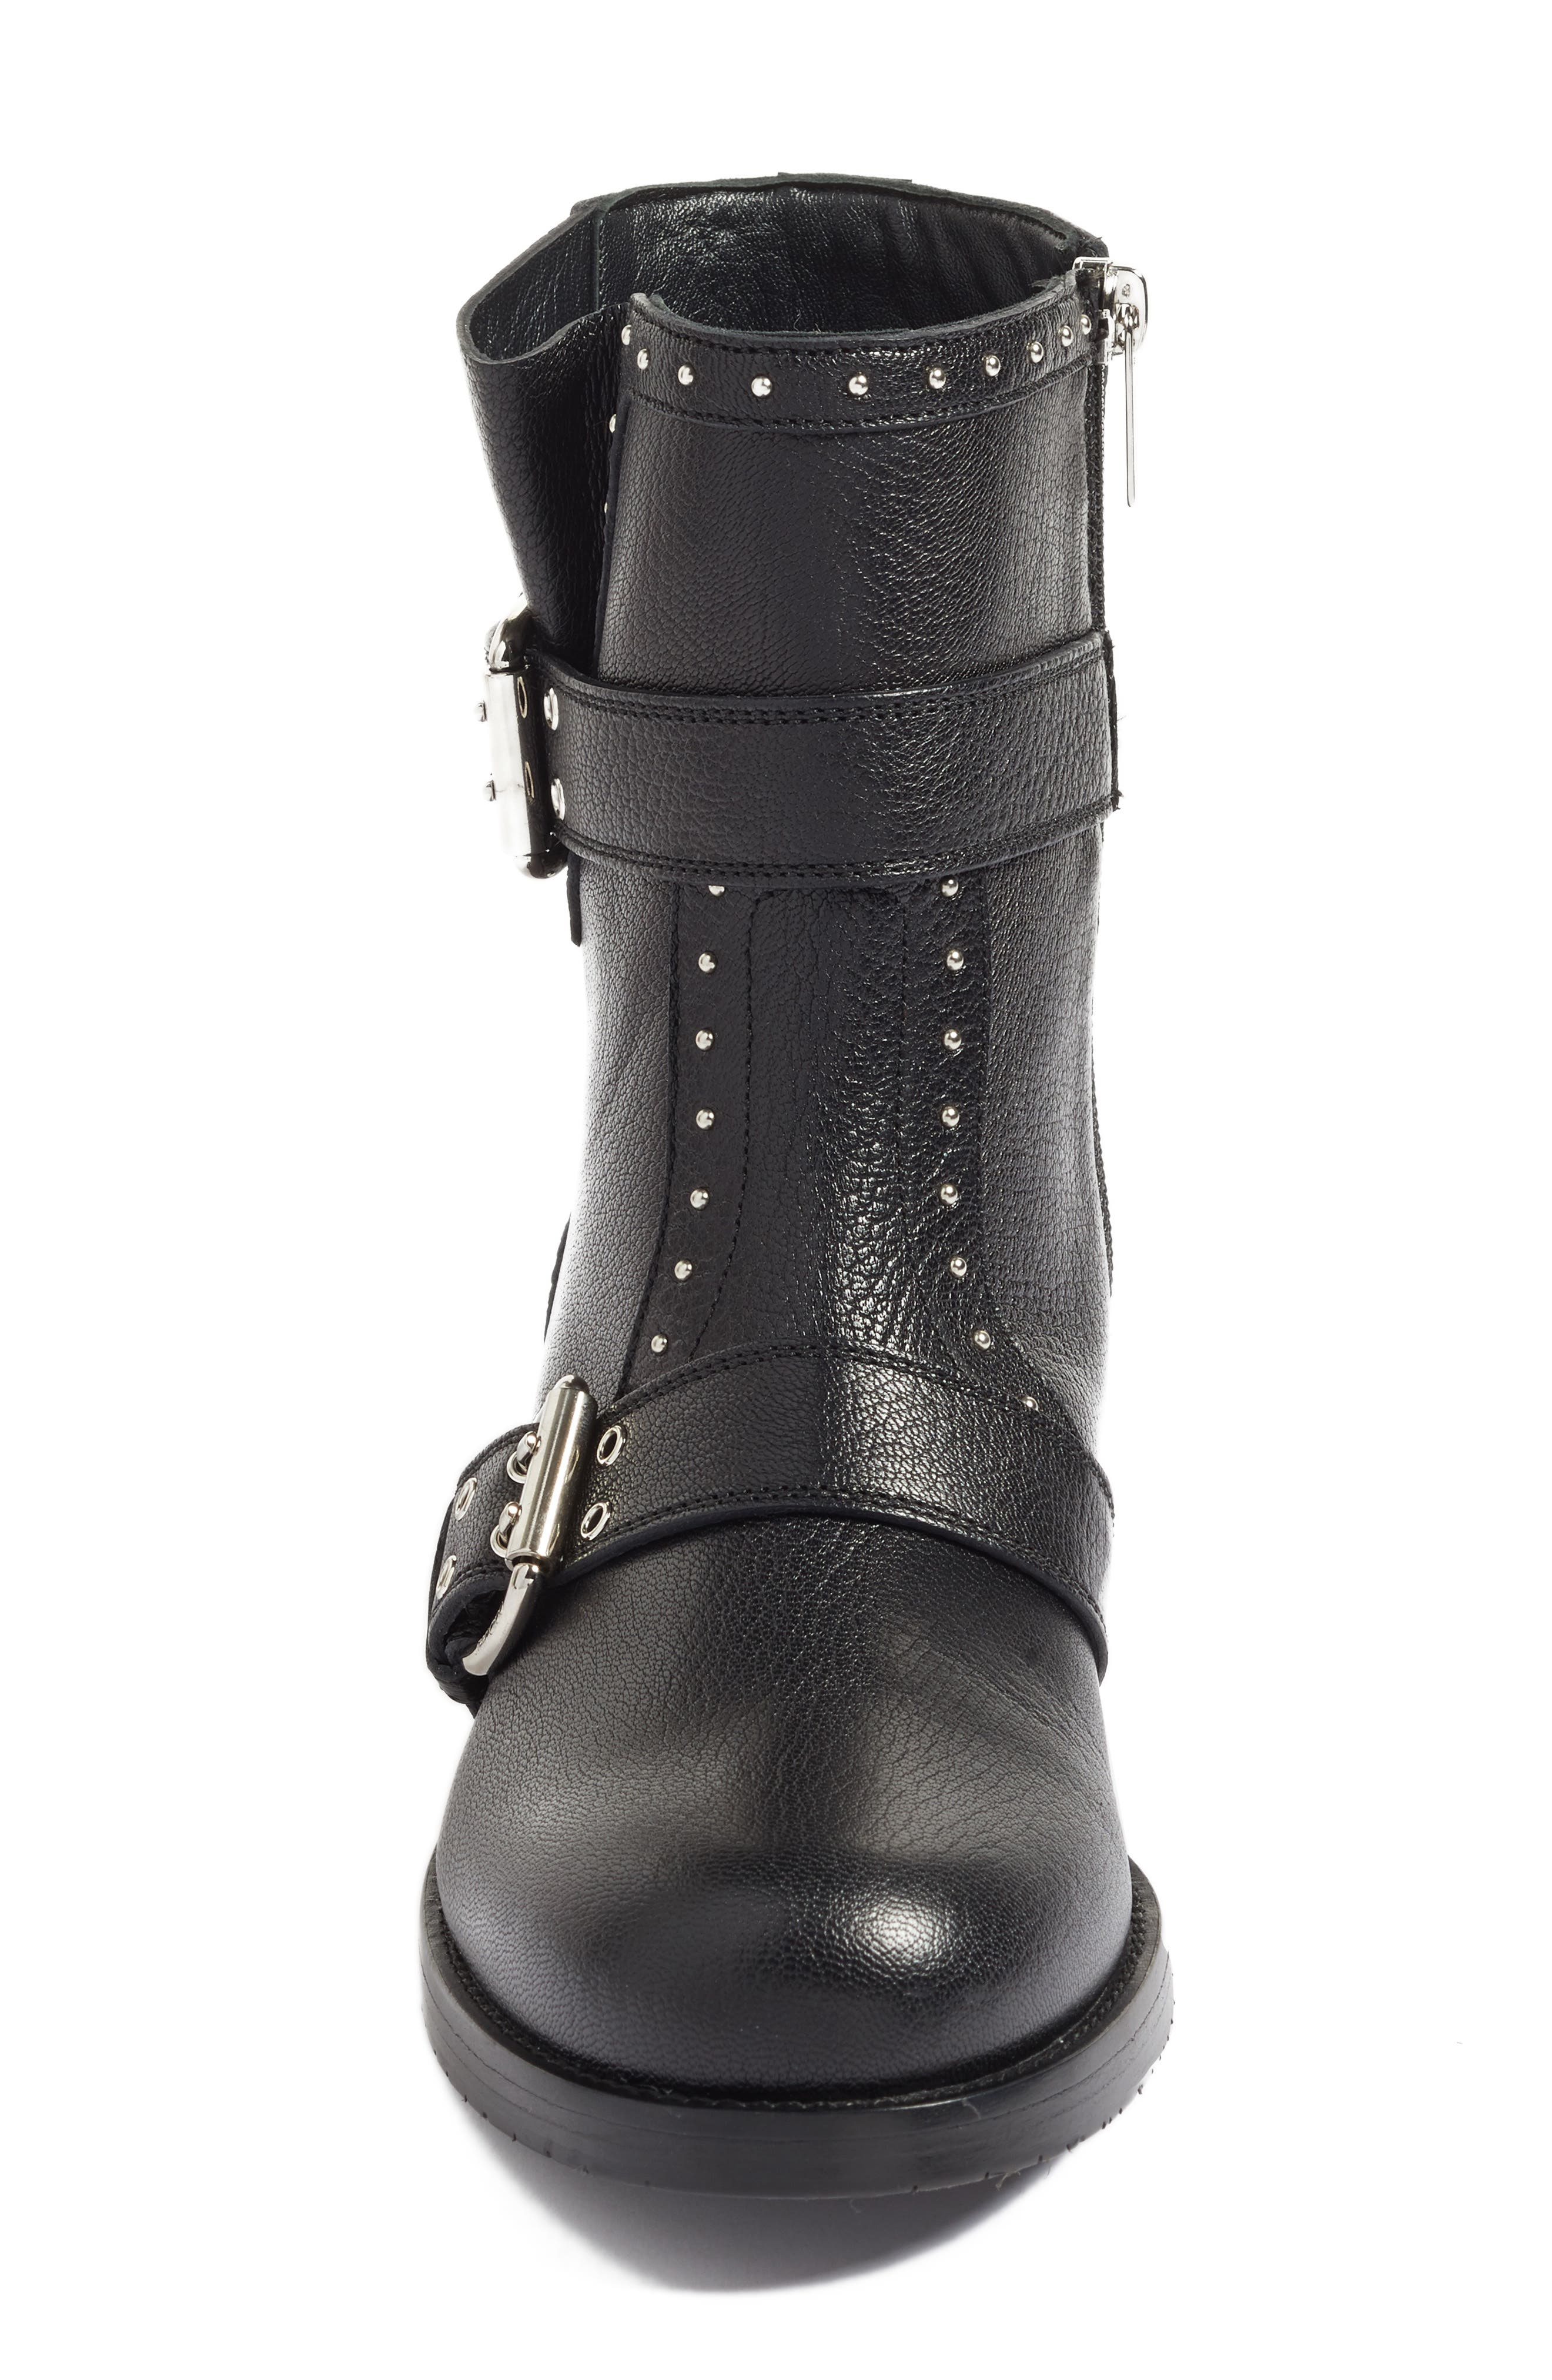 Blyss Combat Boot,                             Alternate thumbnail 4, color,                             Black Leather